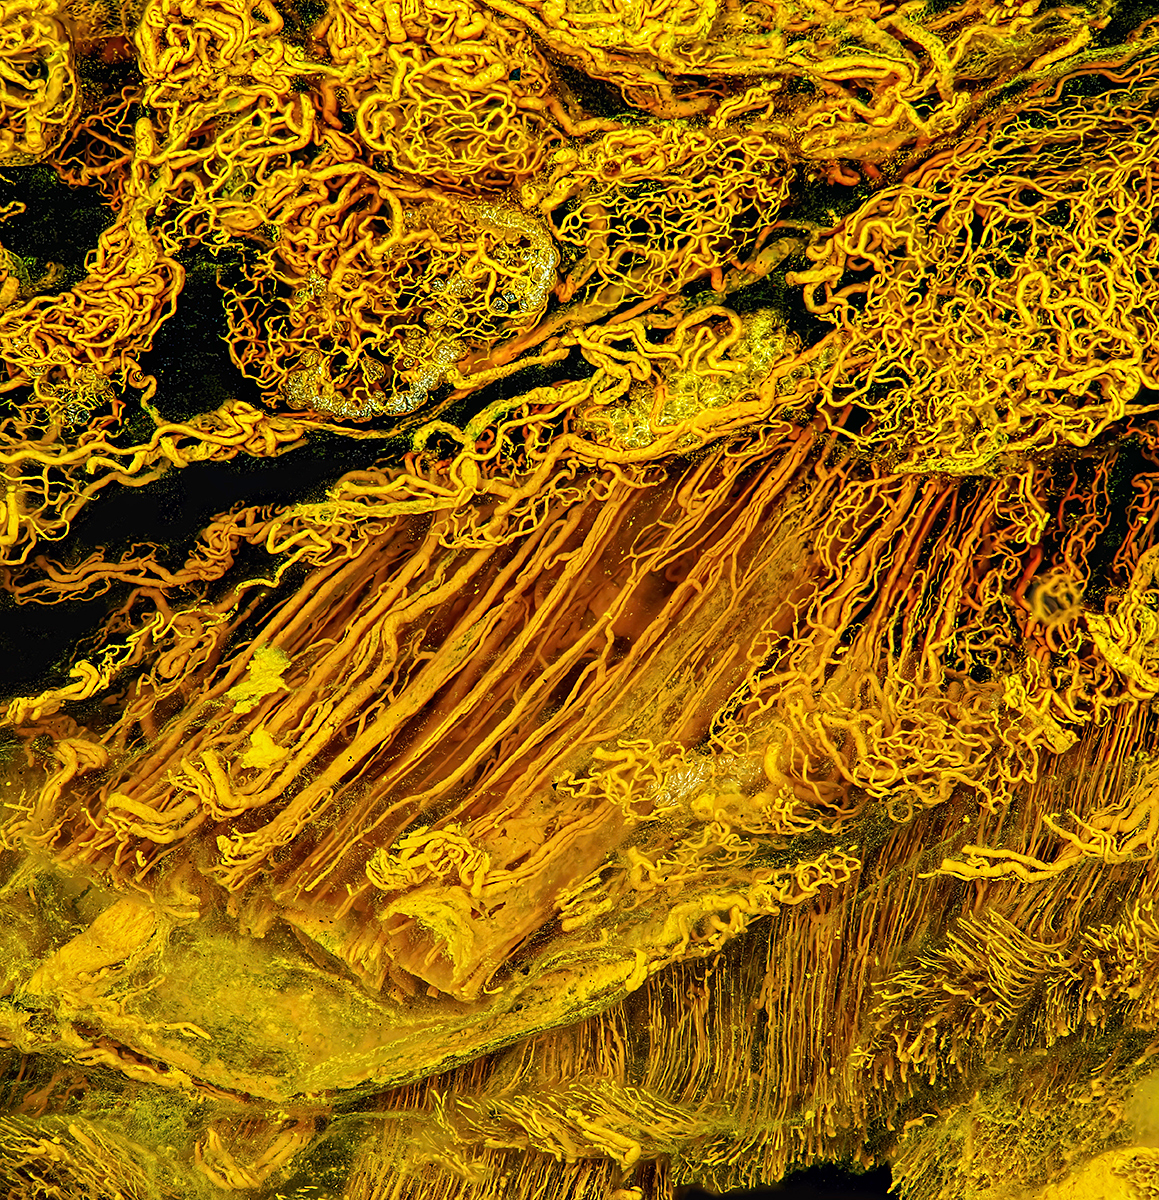 Human skin gland and muscle